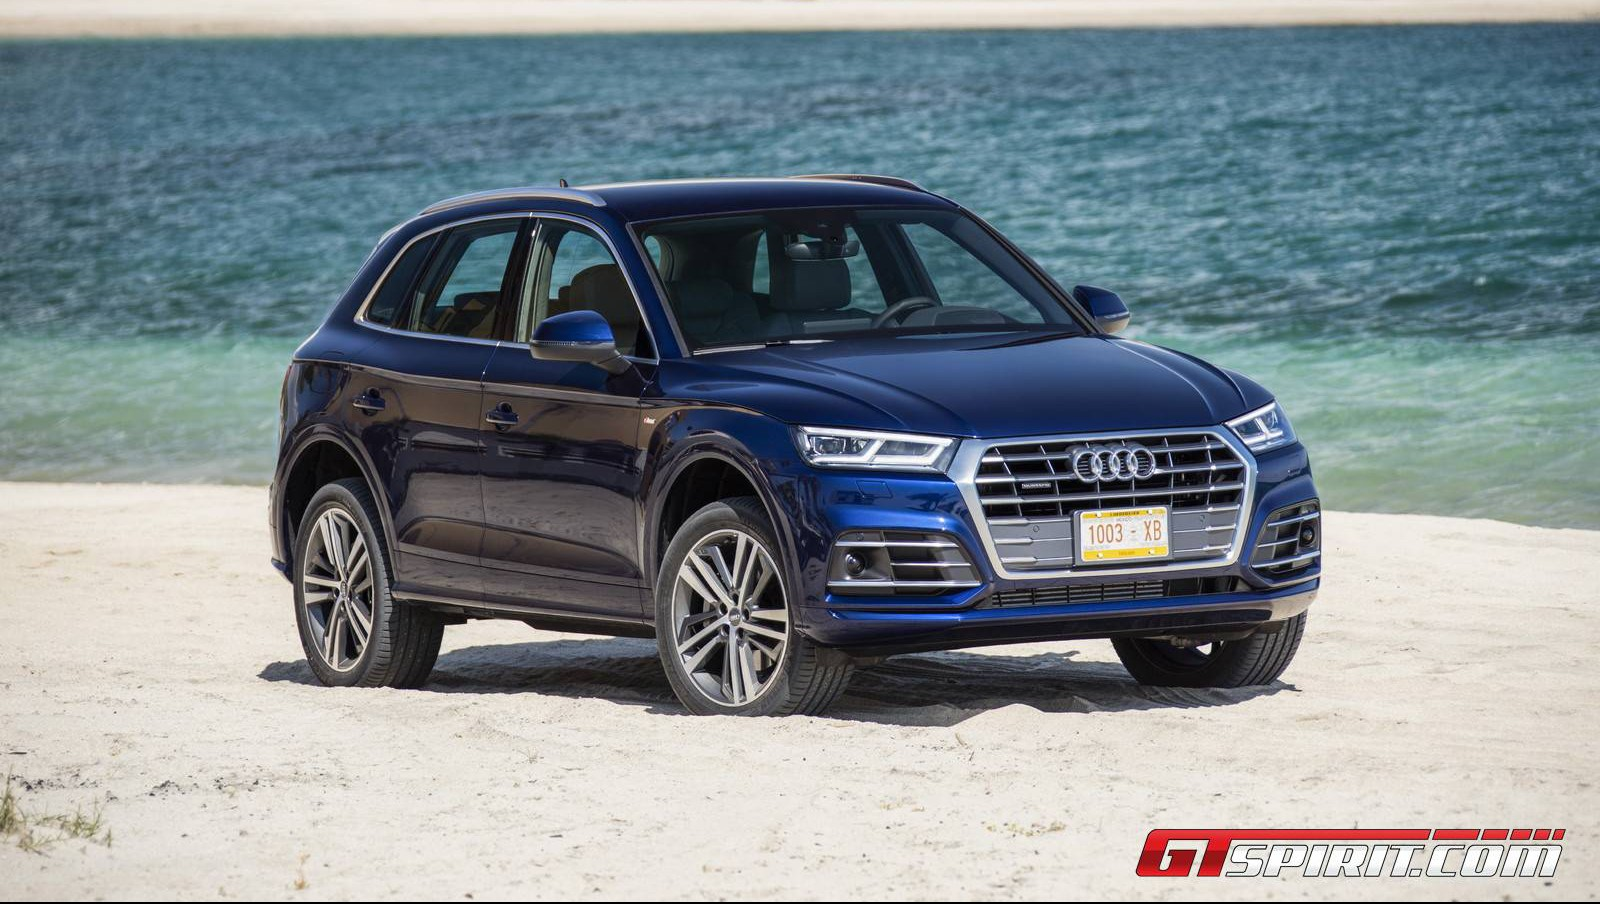 2017 Audi Q5 – The Second Generation Review